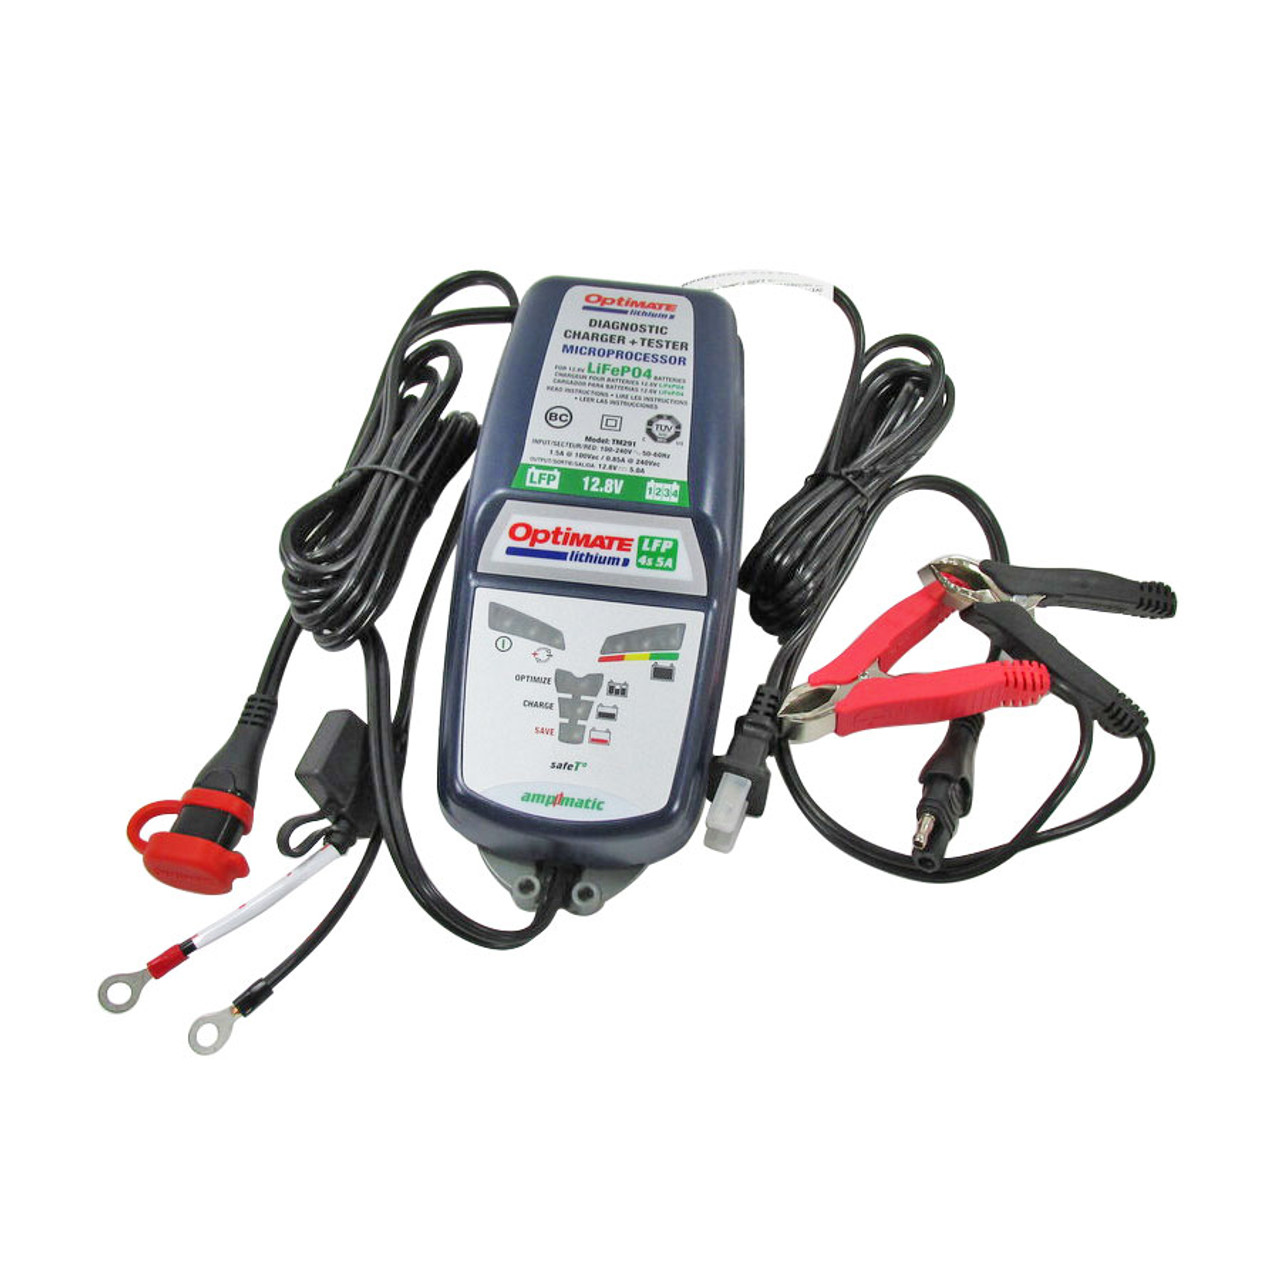 Optimate Tm 291 Lithium Ion Battery Charger 5 Amp Works With All 12 Volt Litho Batteries